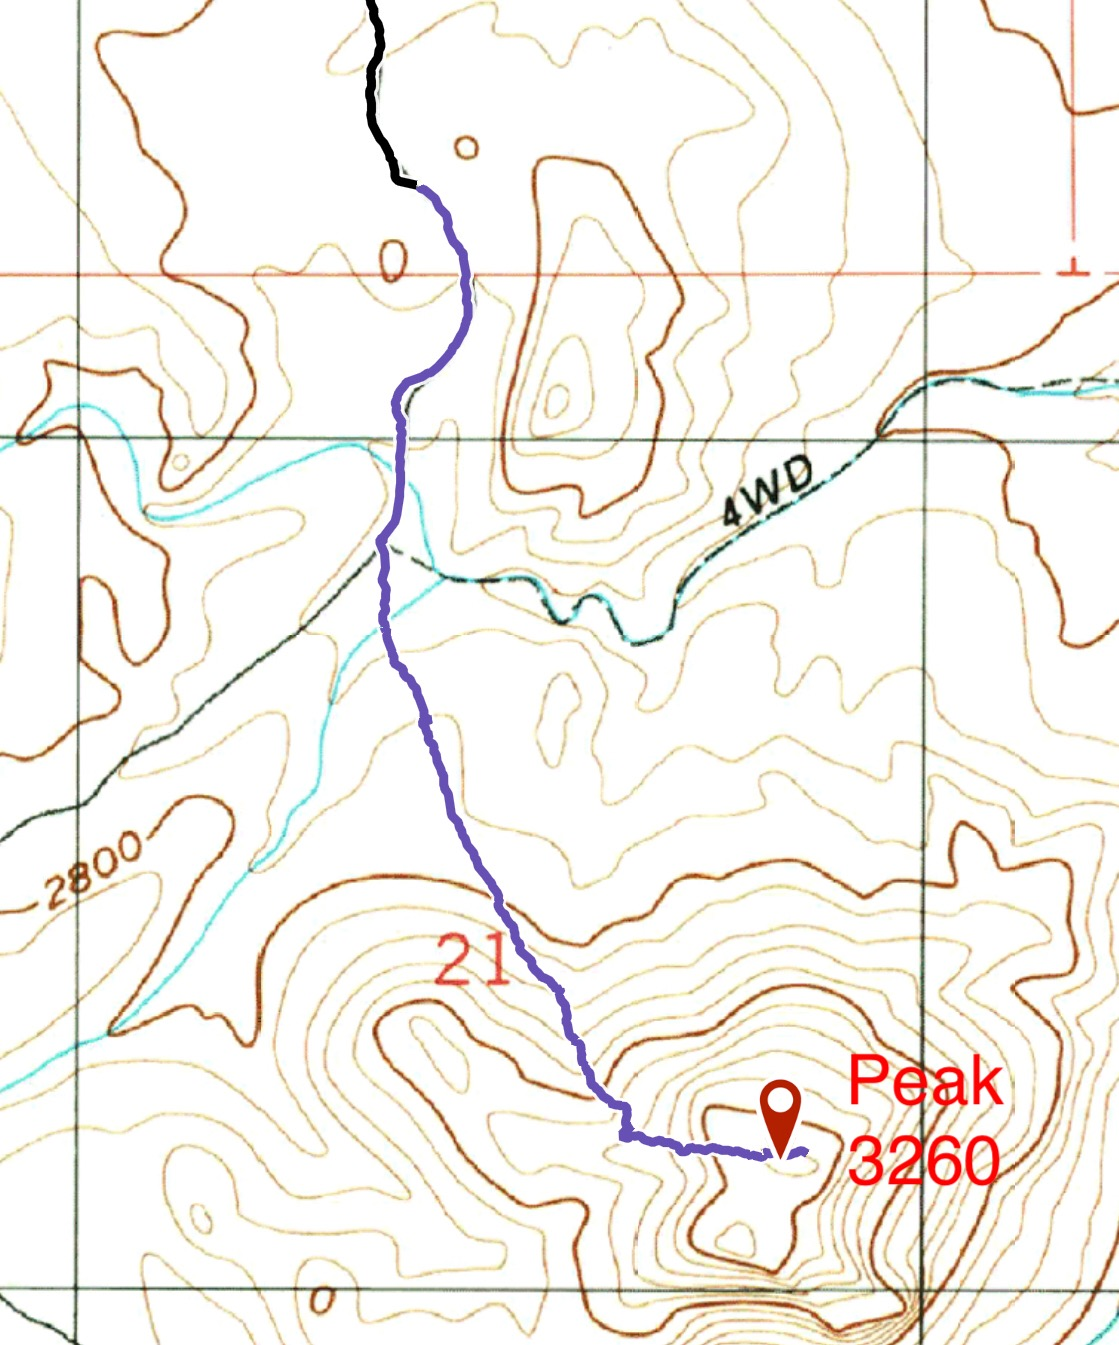 We parked about a mile from the summit to make the walk a little longer. The blue line is our ascent line. Two miles round trip with 506 feet of ascent.